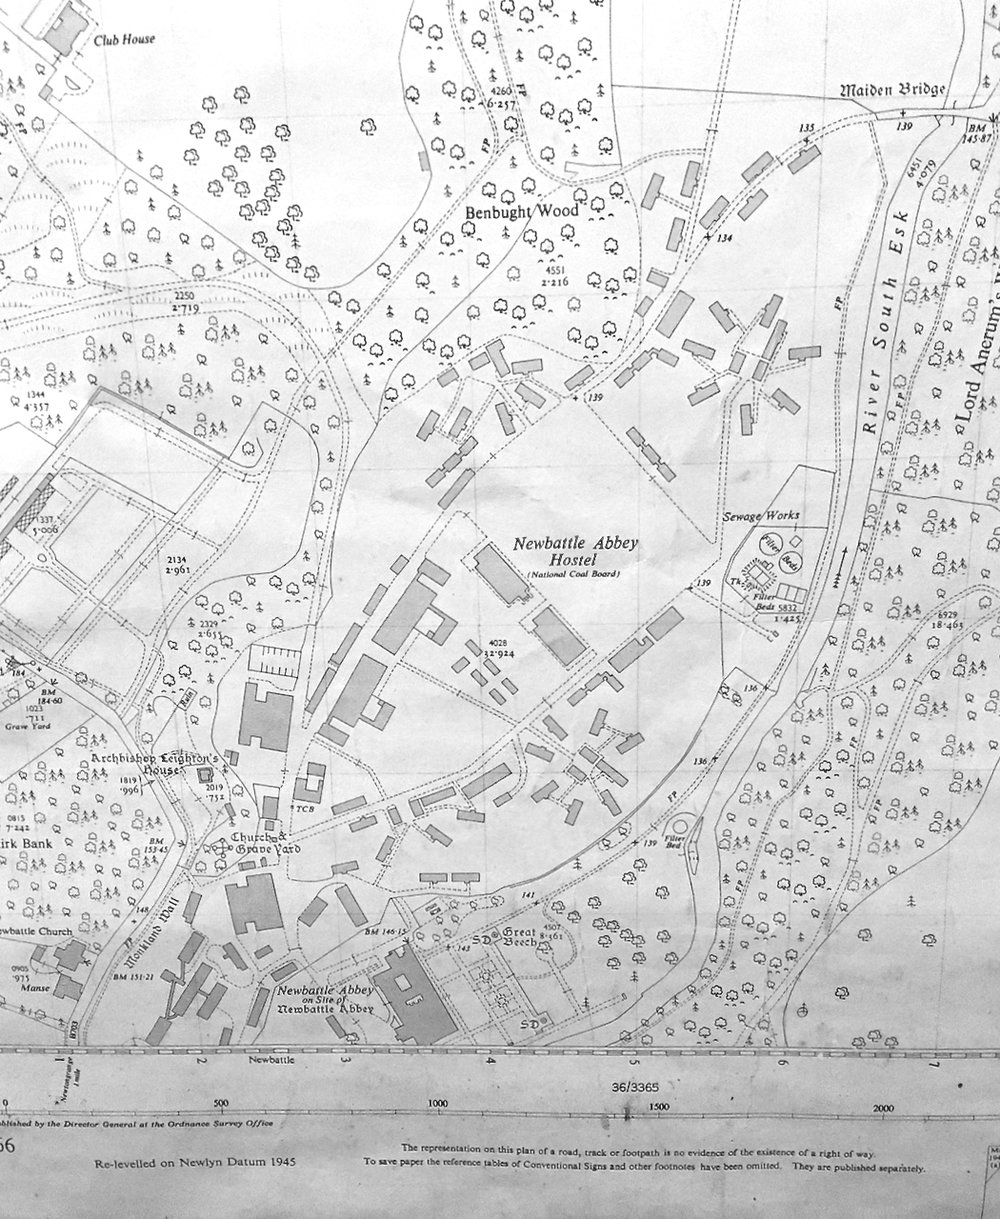 1945 map showing full camp layout